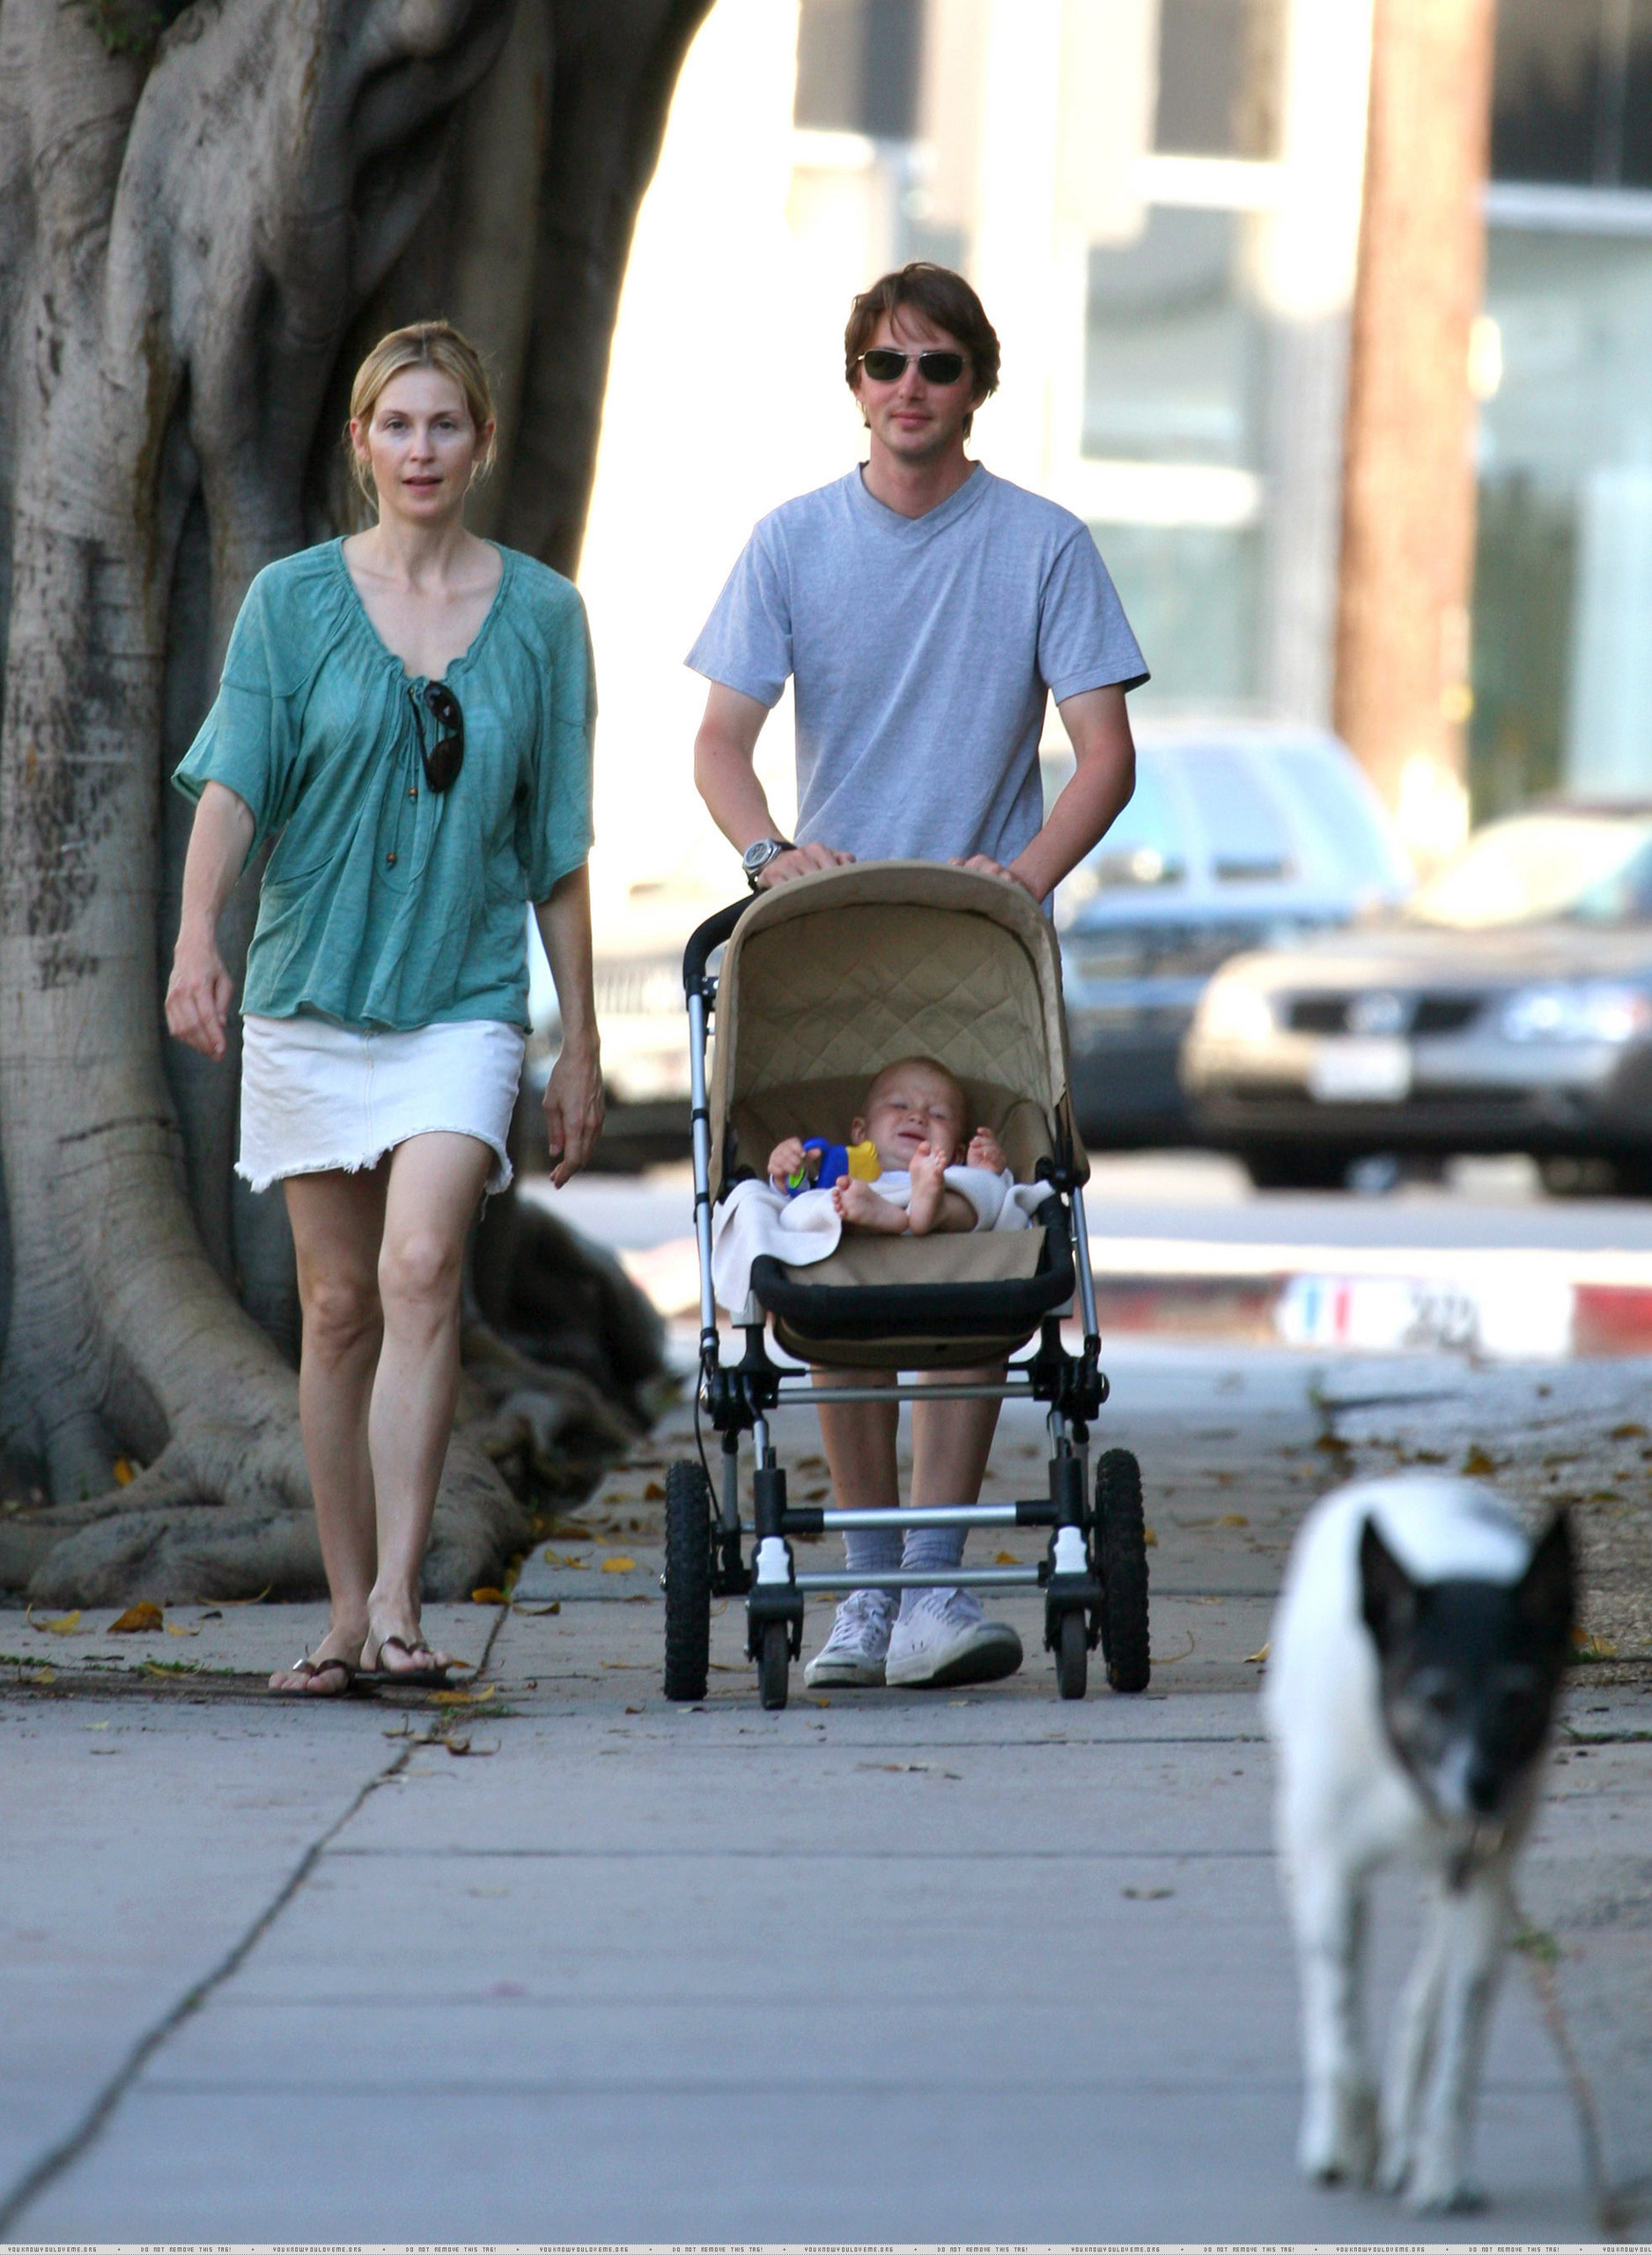 42905_Kelly-and-family-kelly-rutherford-1609563-1876-2560_122_853lo.jpg